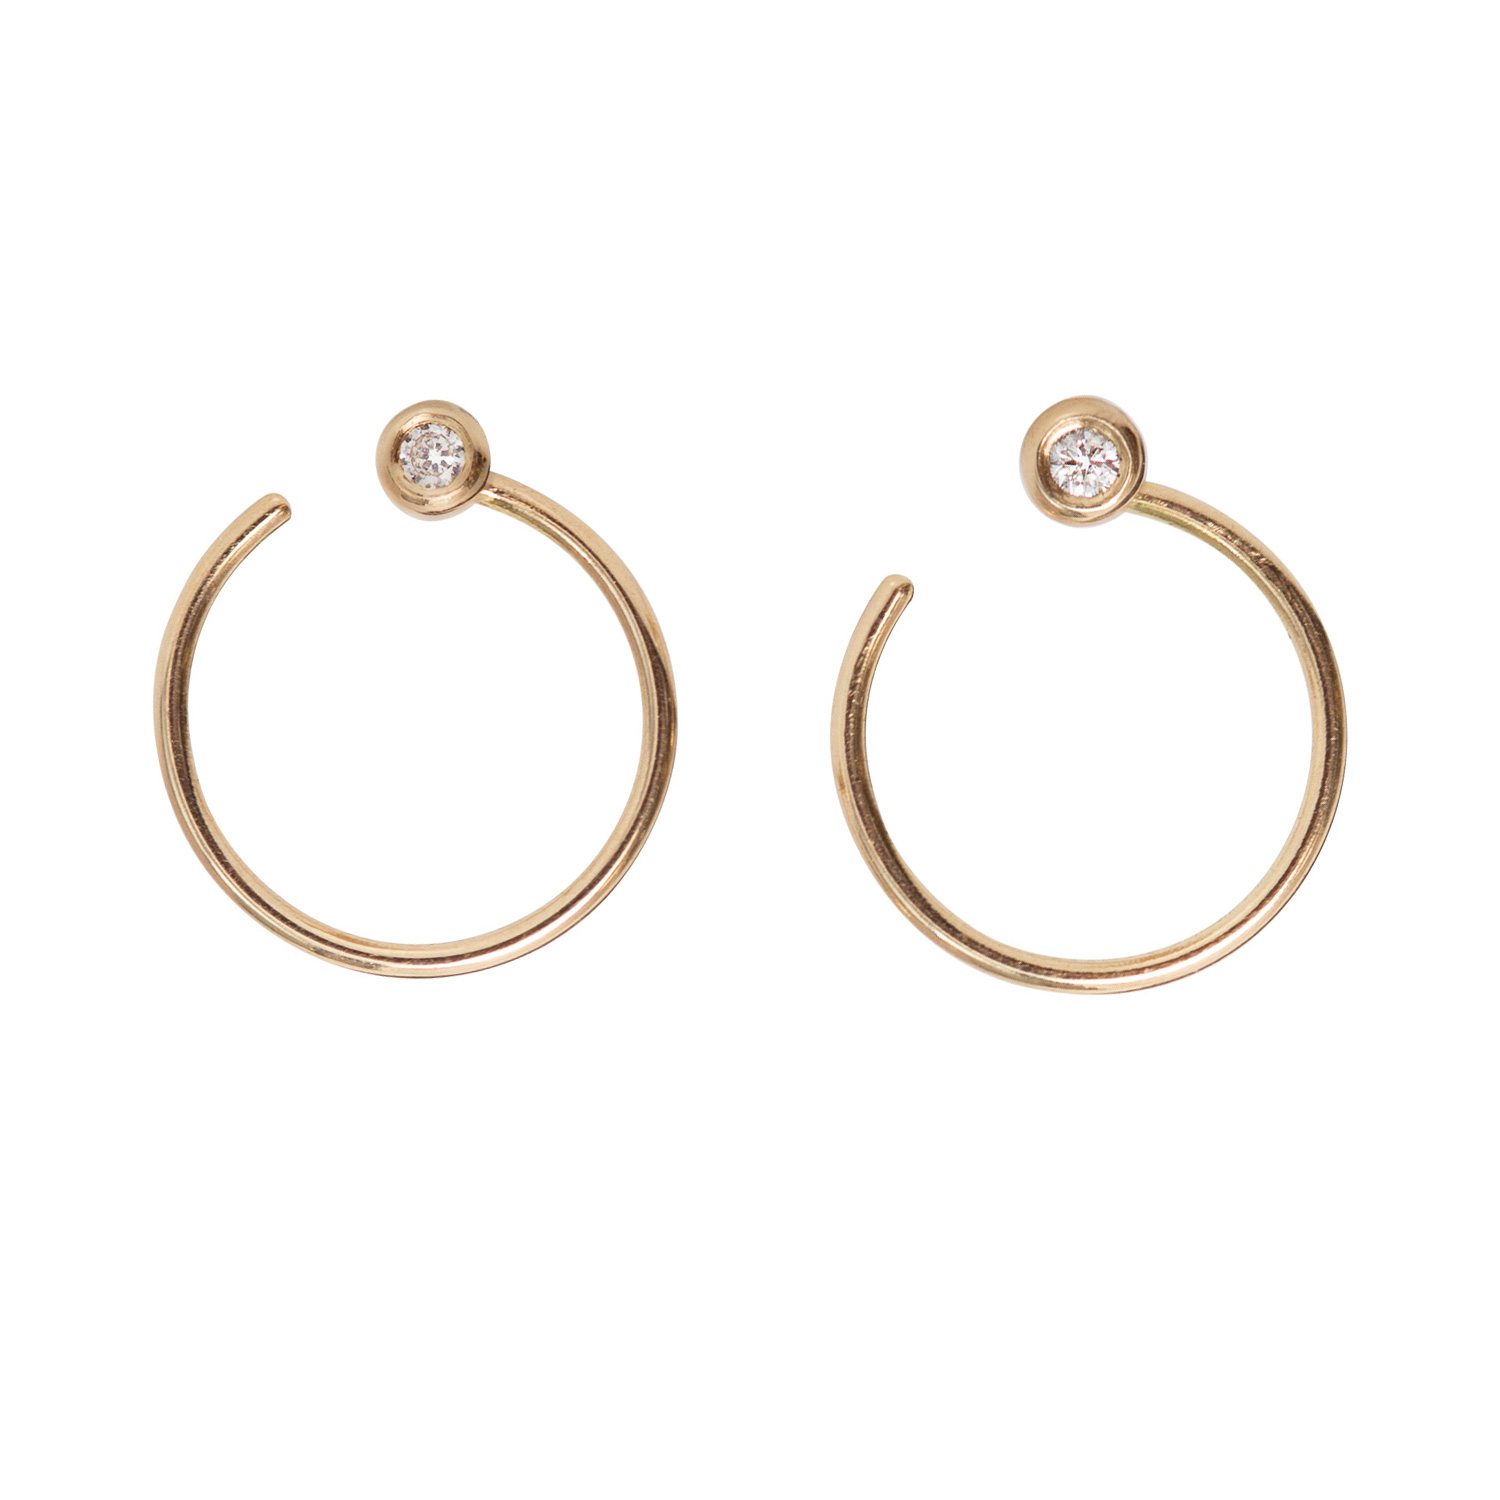 Diamond Ear Nut Earring, Gold (SINGLE) - Catbird